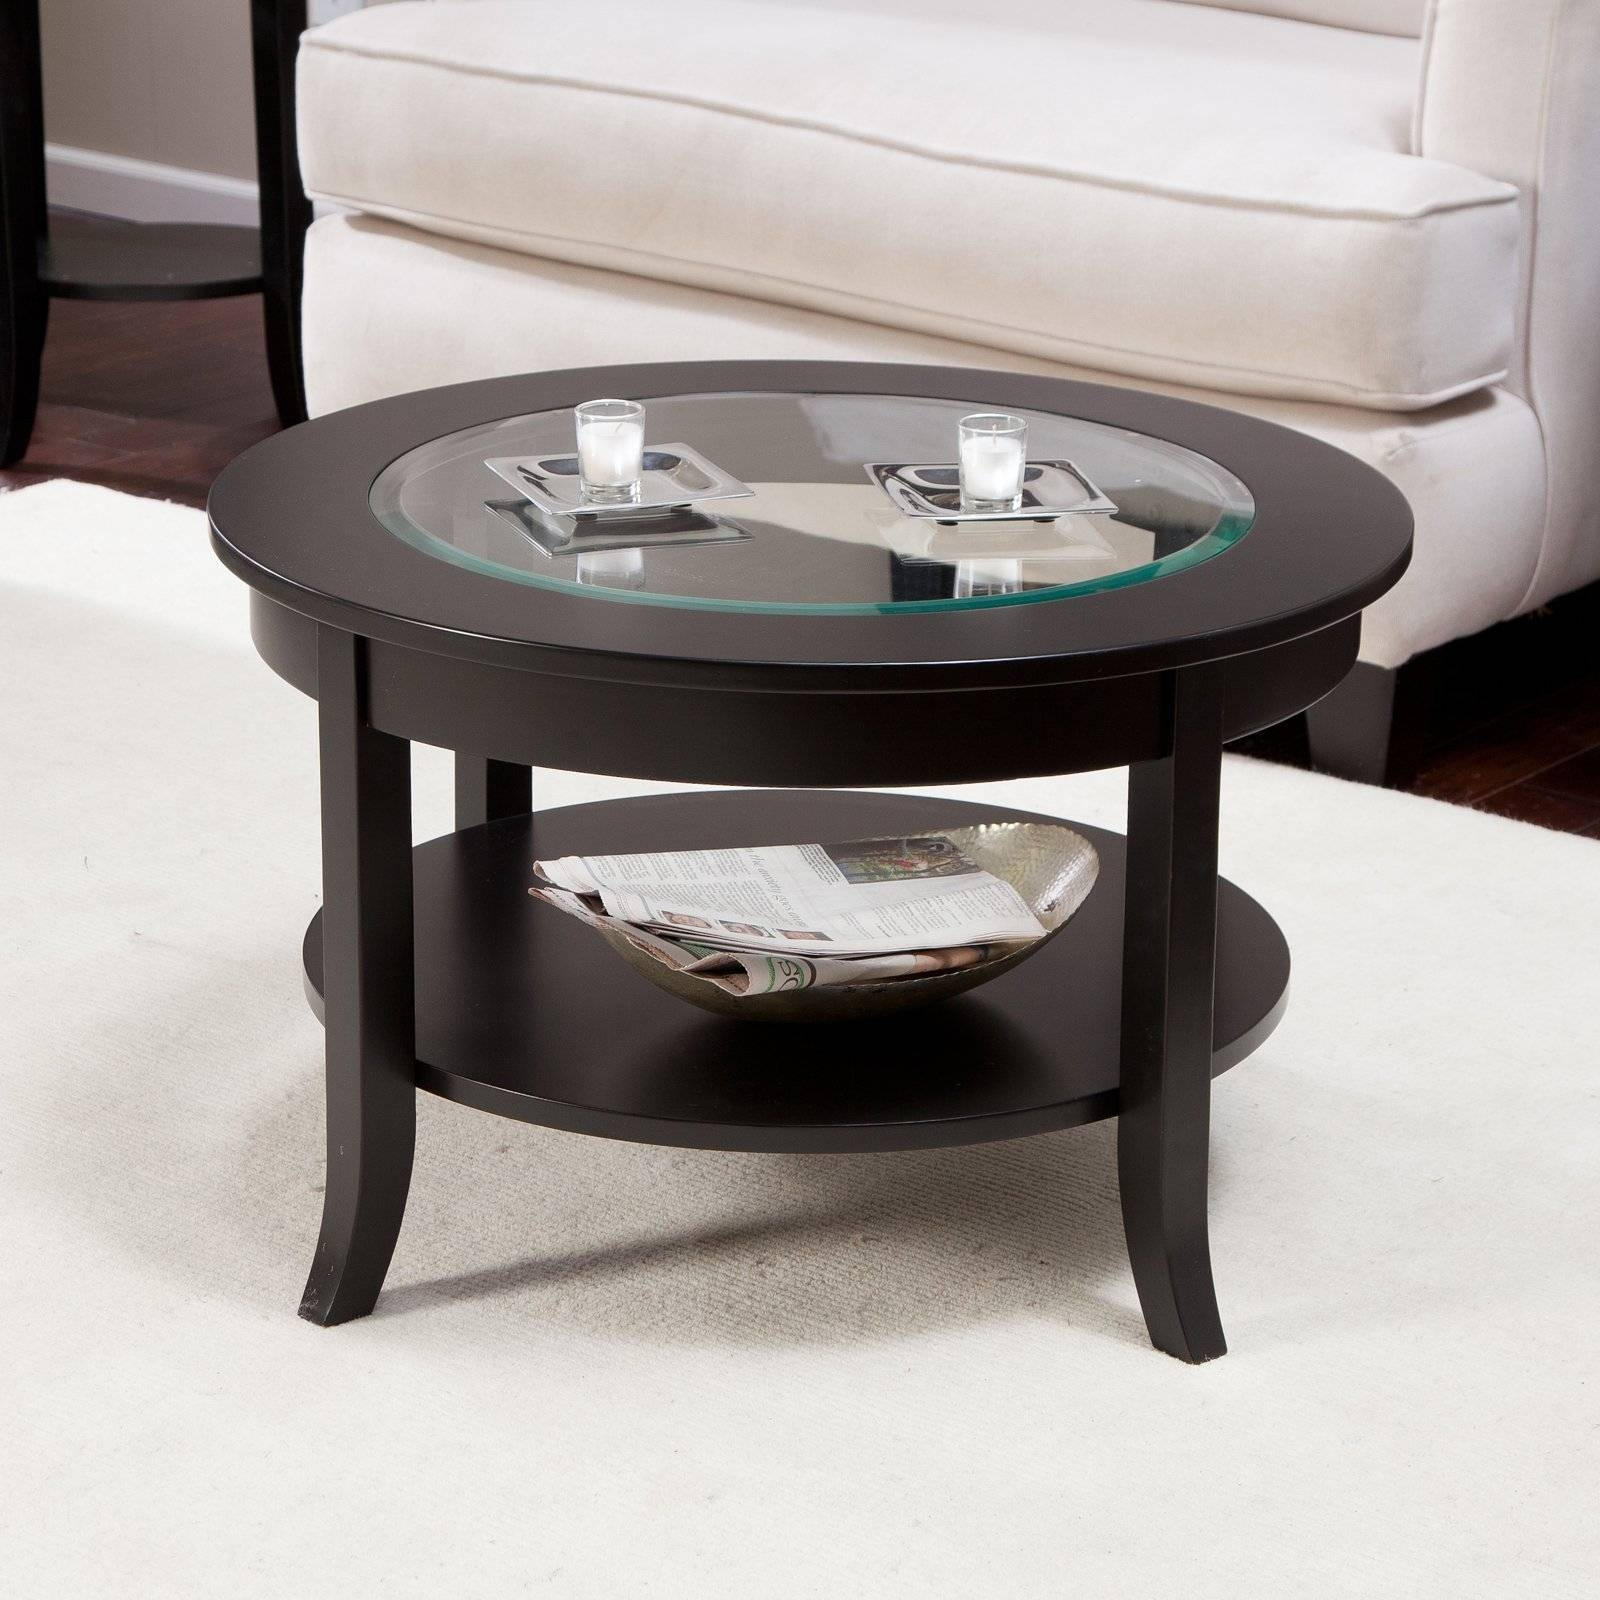 Abbyson Living Heritage Round Espresso Coffee Table | Coffee for Heritage Coffee Tables (Image 2 of 30)